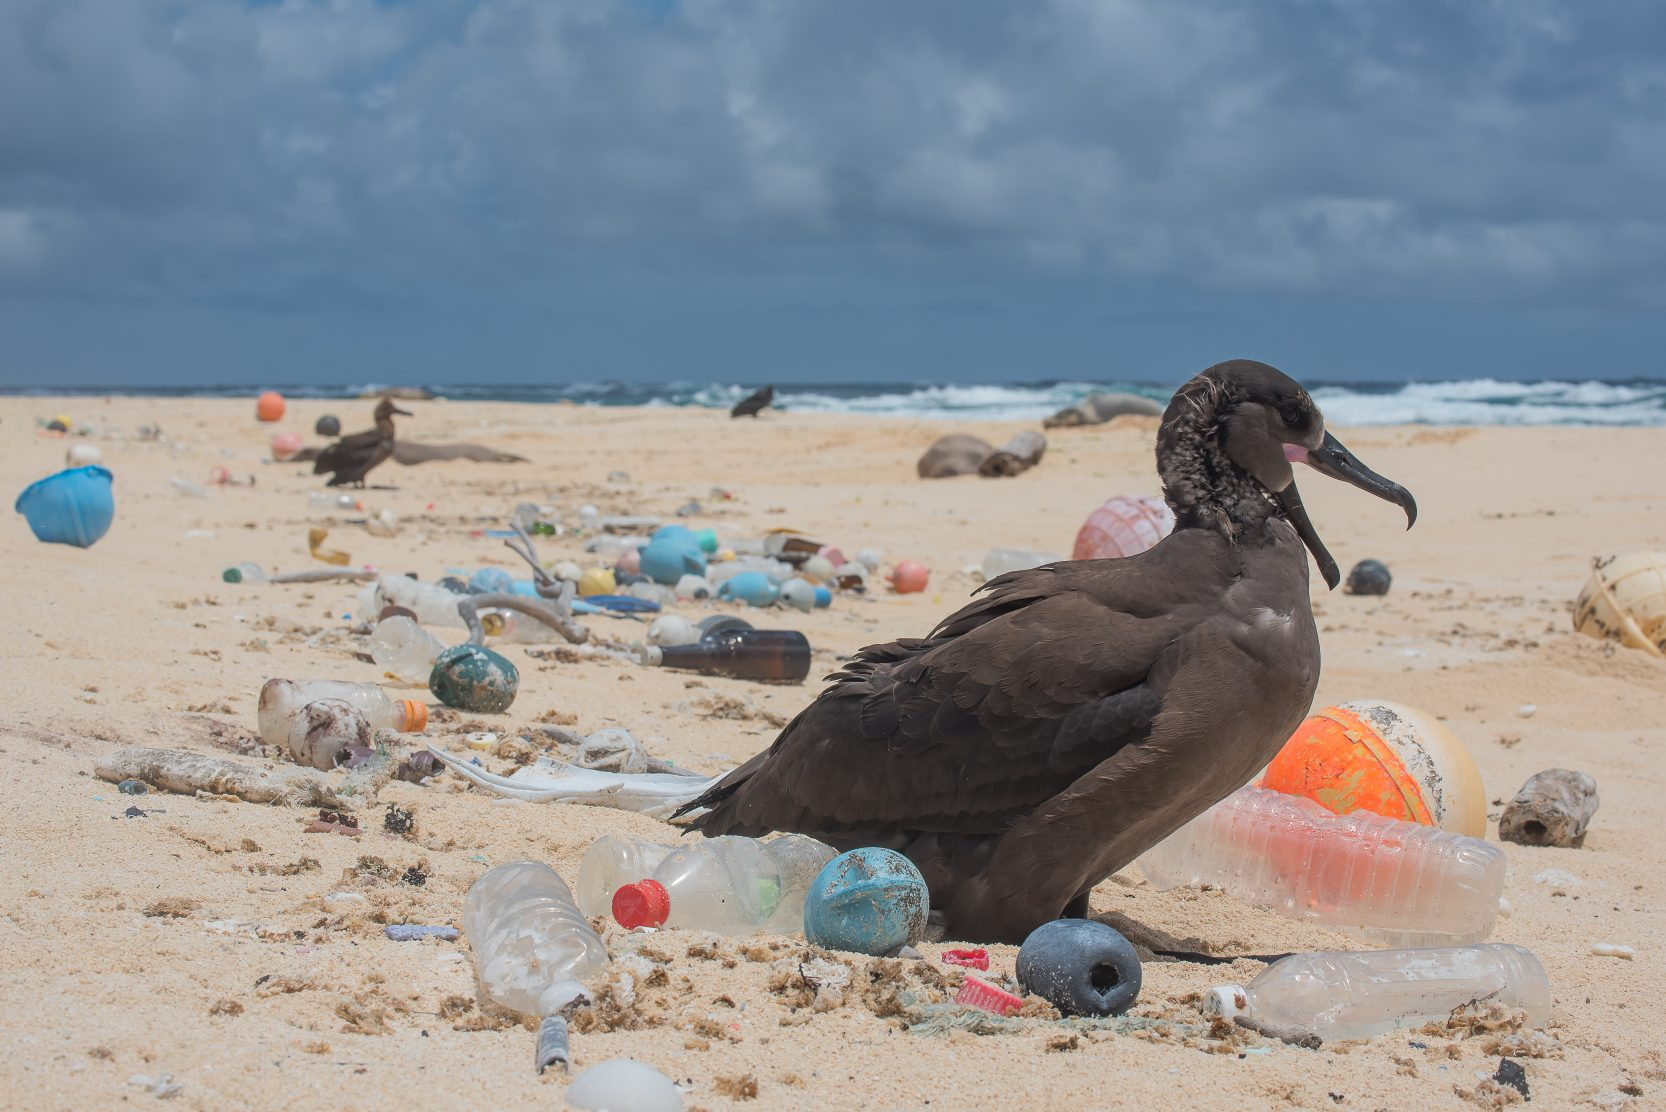 Product Design and Plastic Pollution